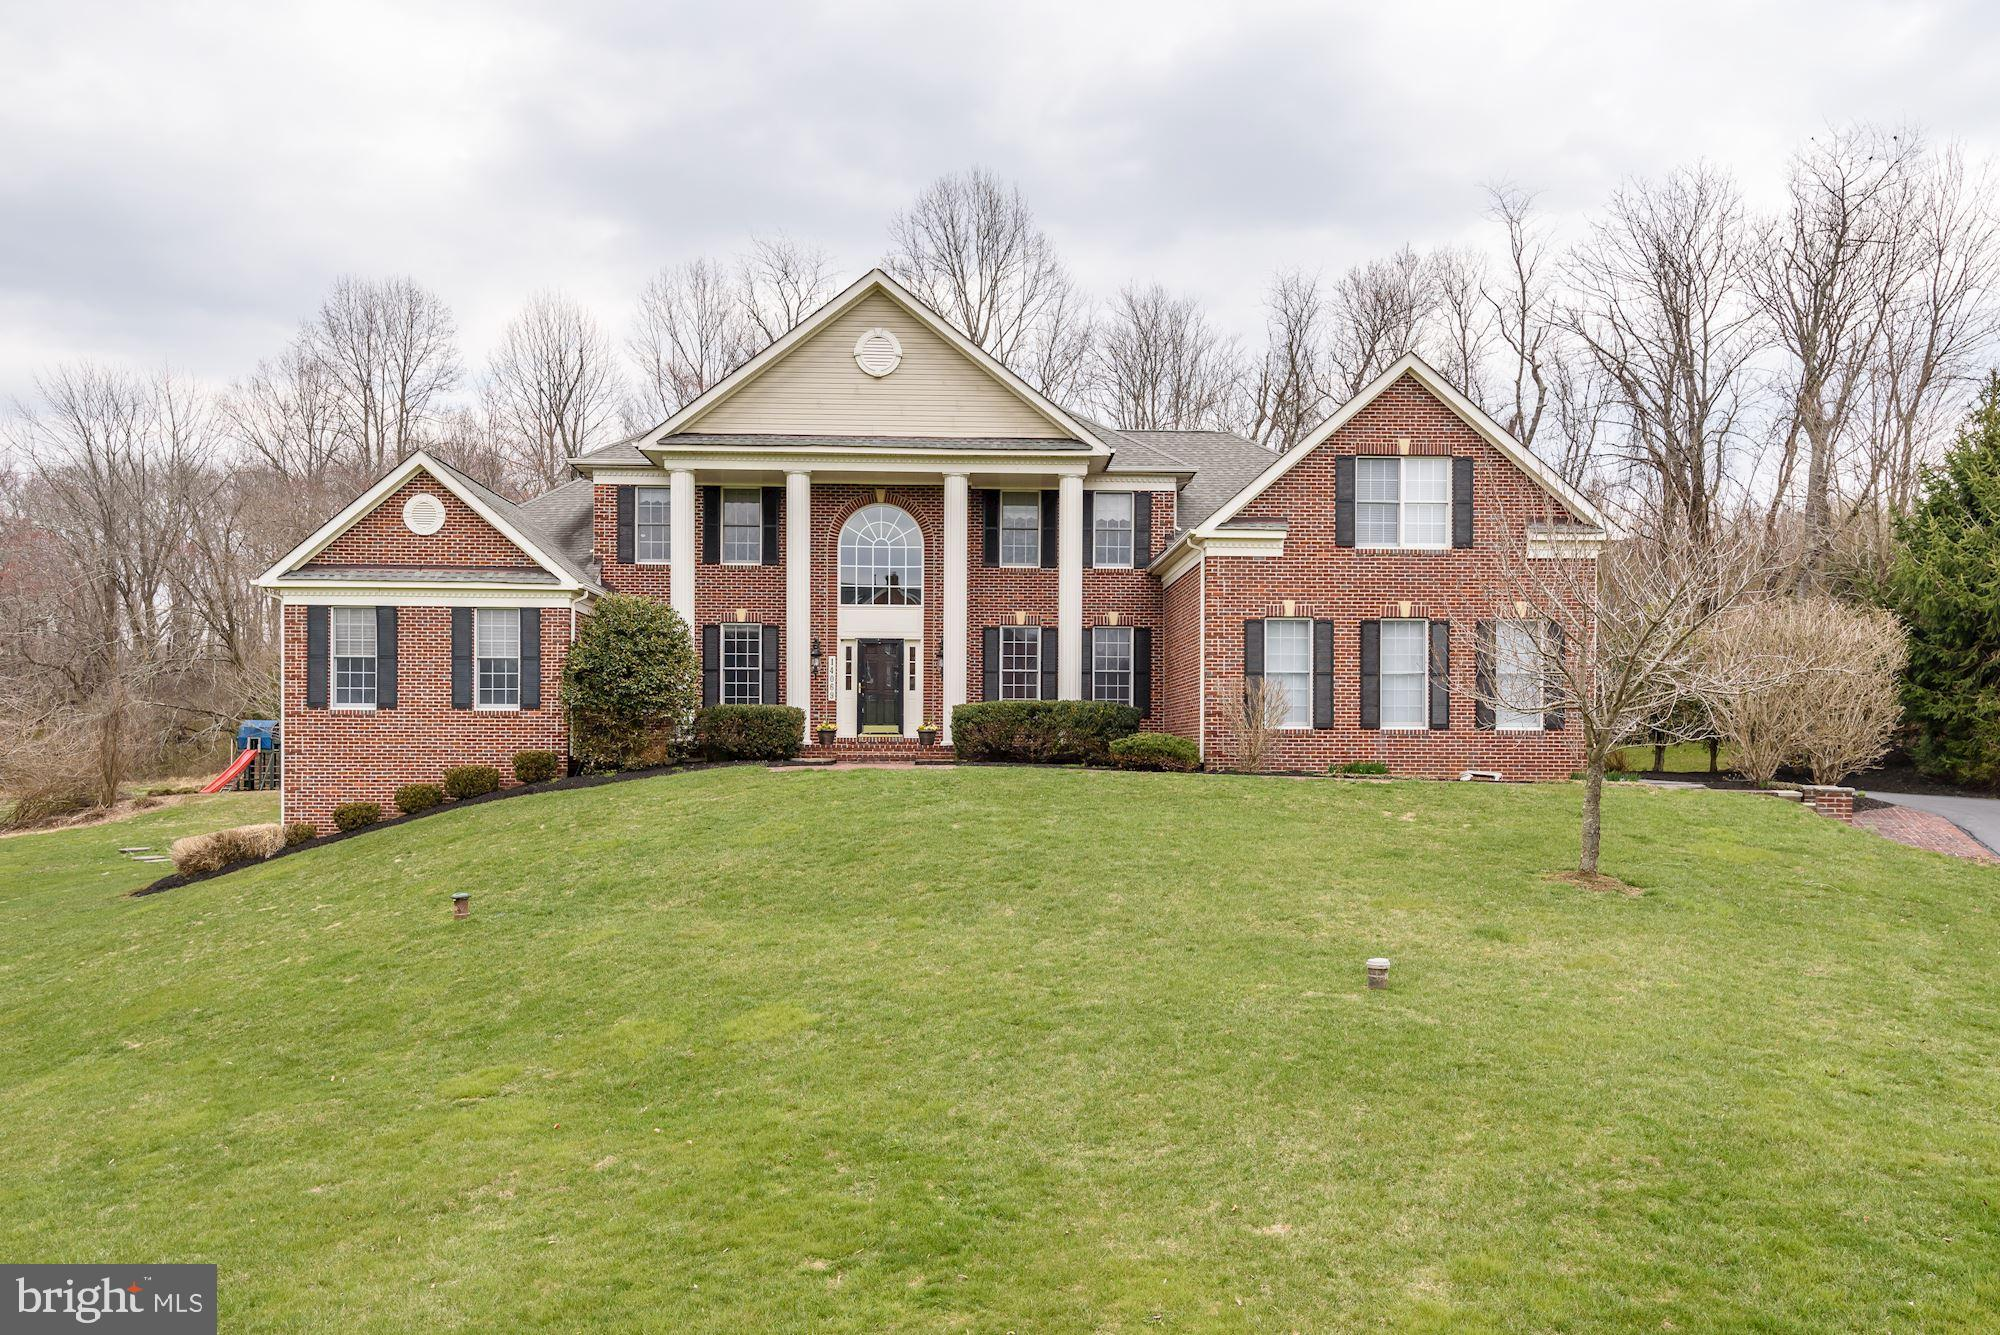 14069 BIG BRANCH DRIVE, DAYTON, MD 21036